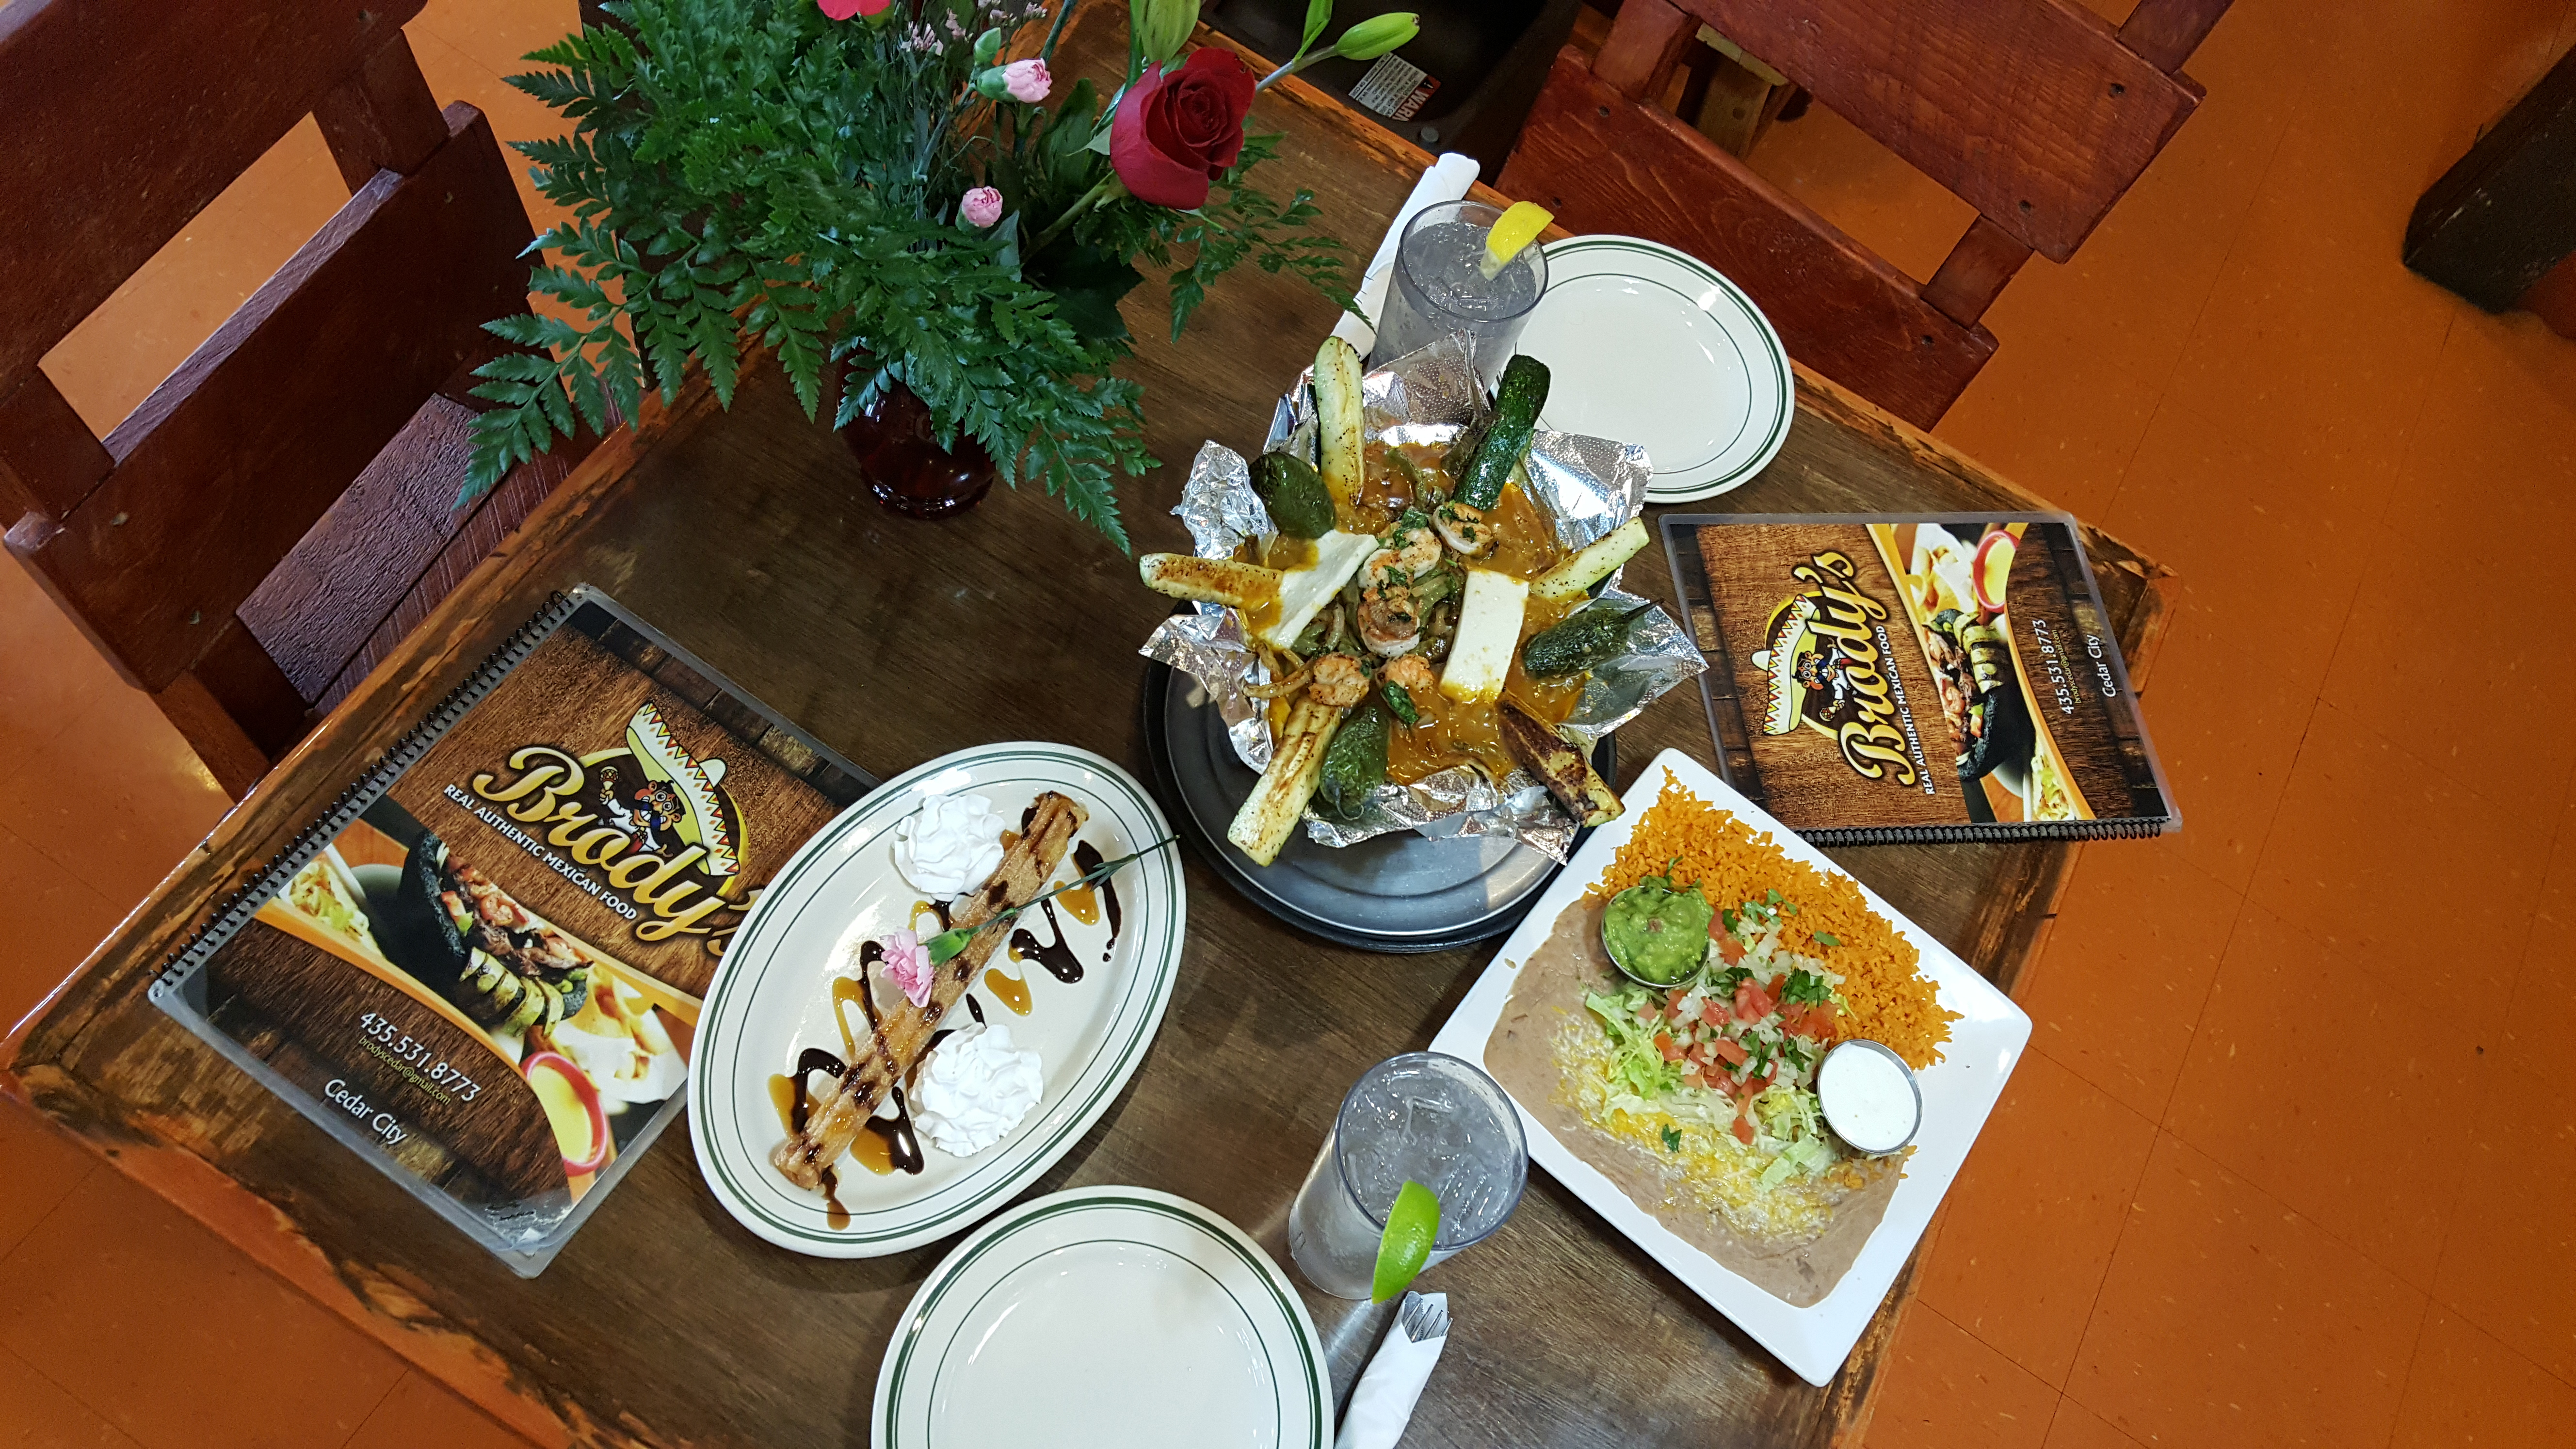 Meal Combo and Dessert at Brodys Mexican Restaurant